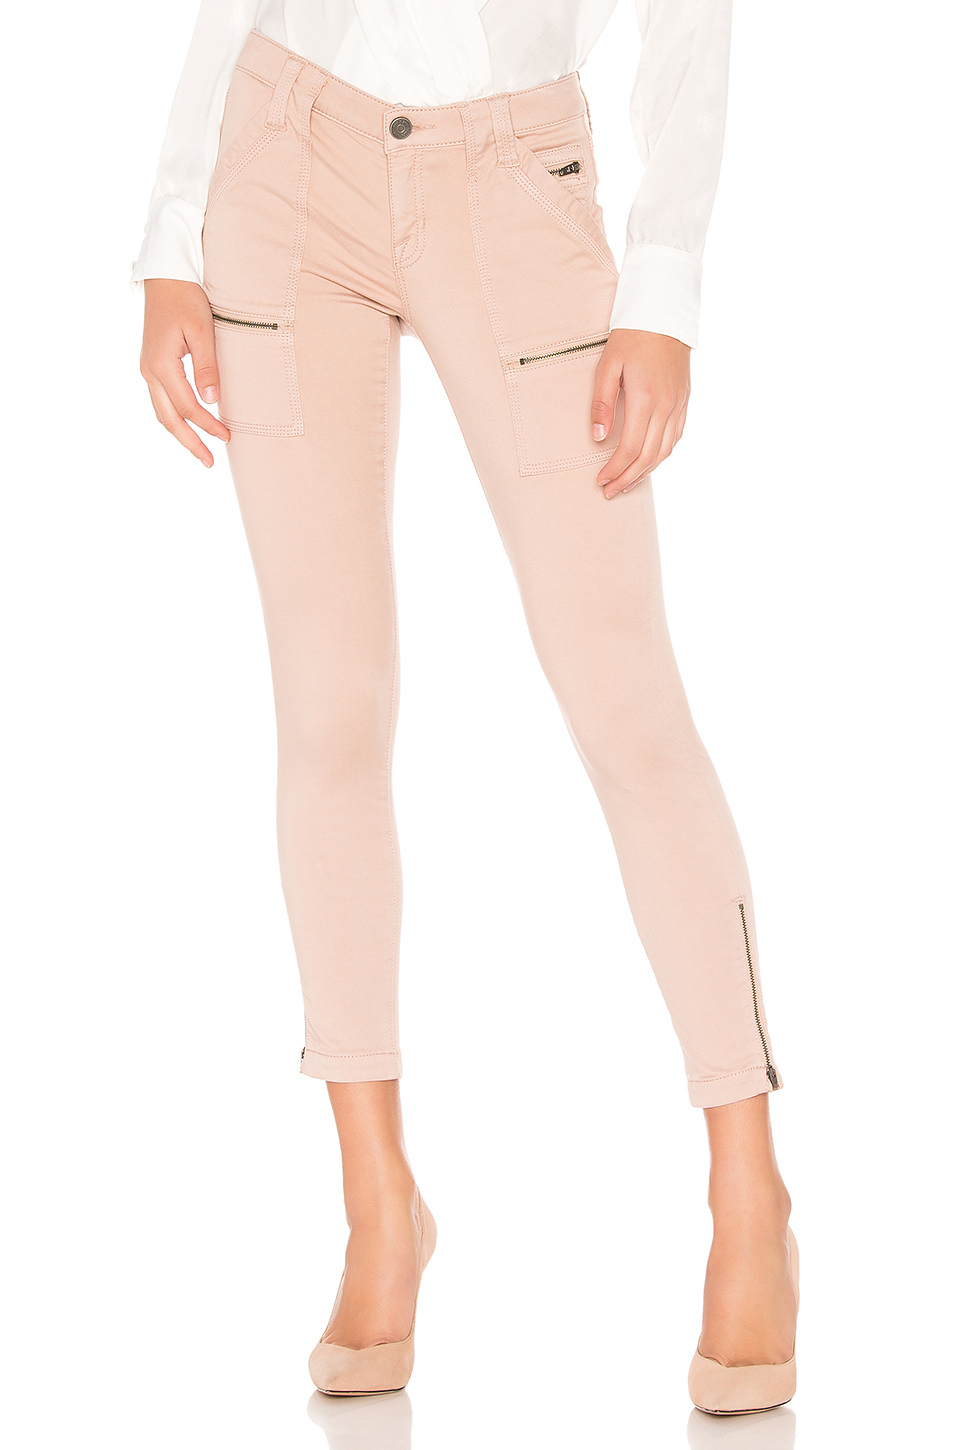 afde168ace05 Buy Original Joie Park Skinny Pant at Indonesia